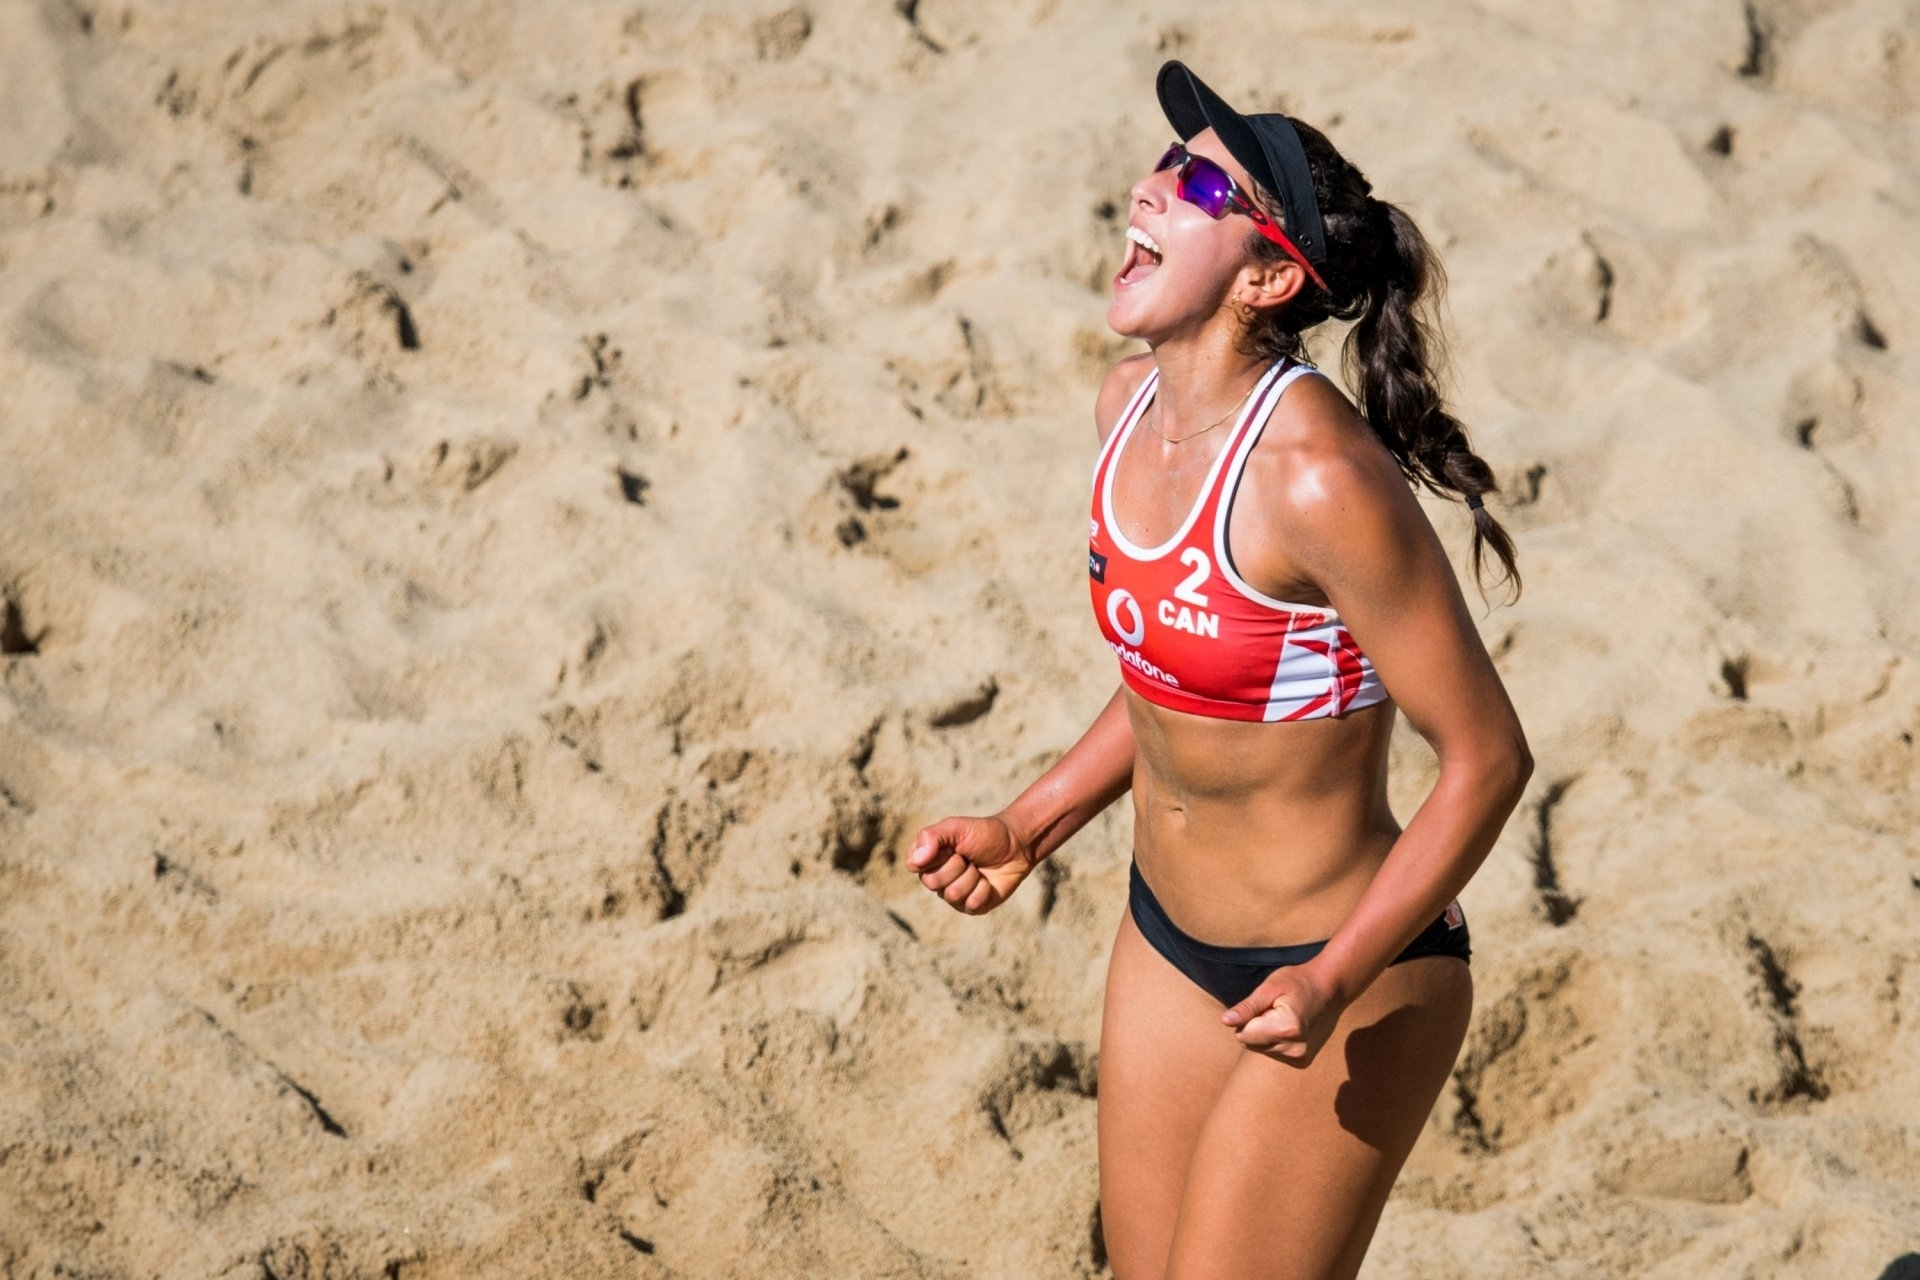 World number one Melissa Humana-Paredes says the fan engagement and music of the DJs is good for beach volleybal